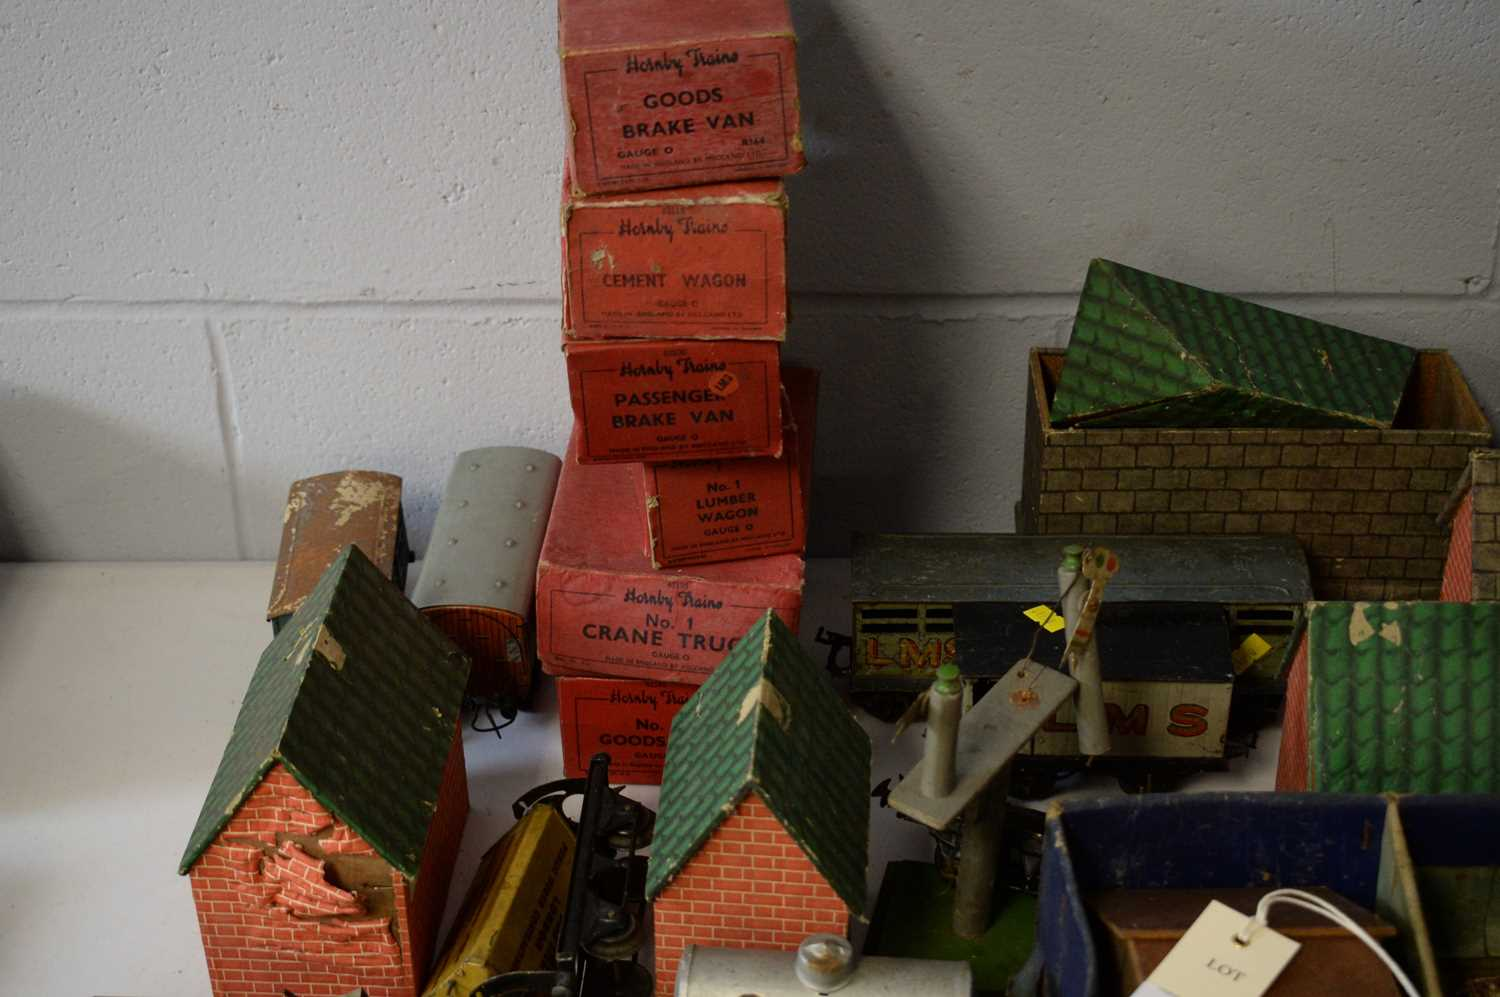 Qty 0-gauge model railway, and other accessories. - Image 3 of 3